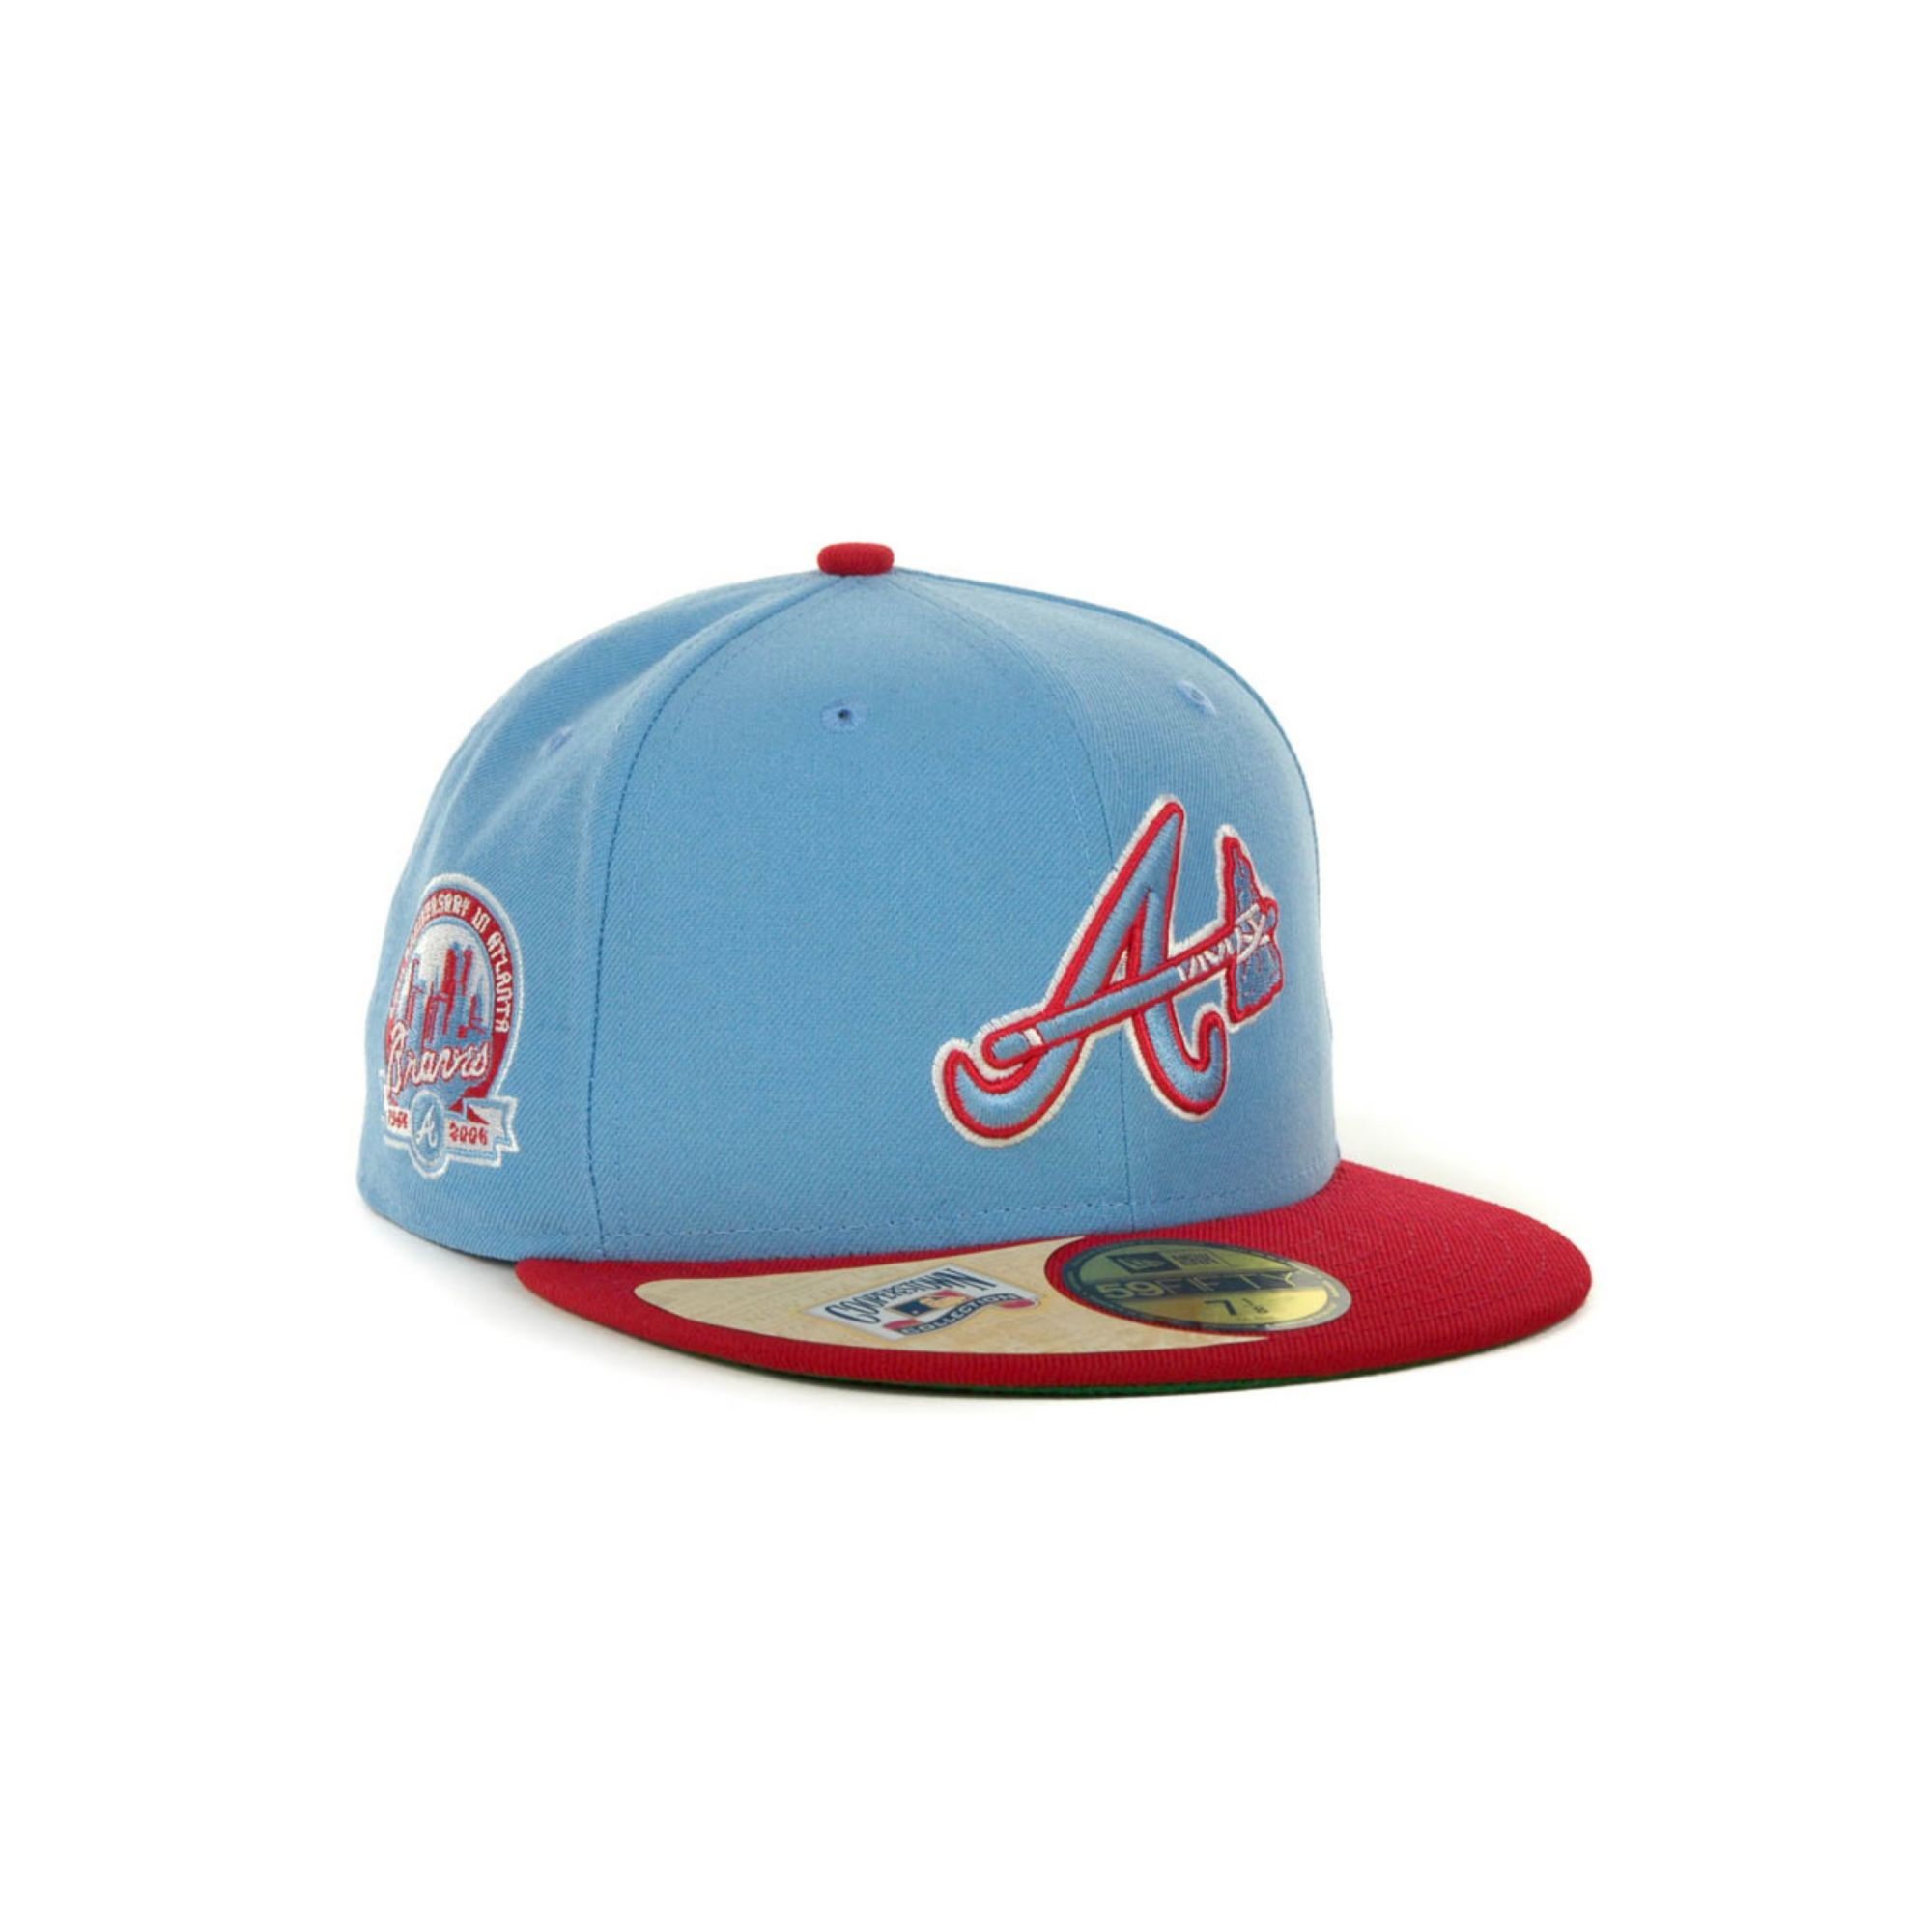 d0ce11c96ce ... top quality lyst ktz atlanta braves cooperstown patch 59fifty cap in  blue for men 9fe07 5a8cb